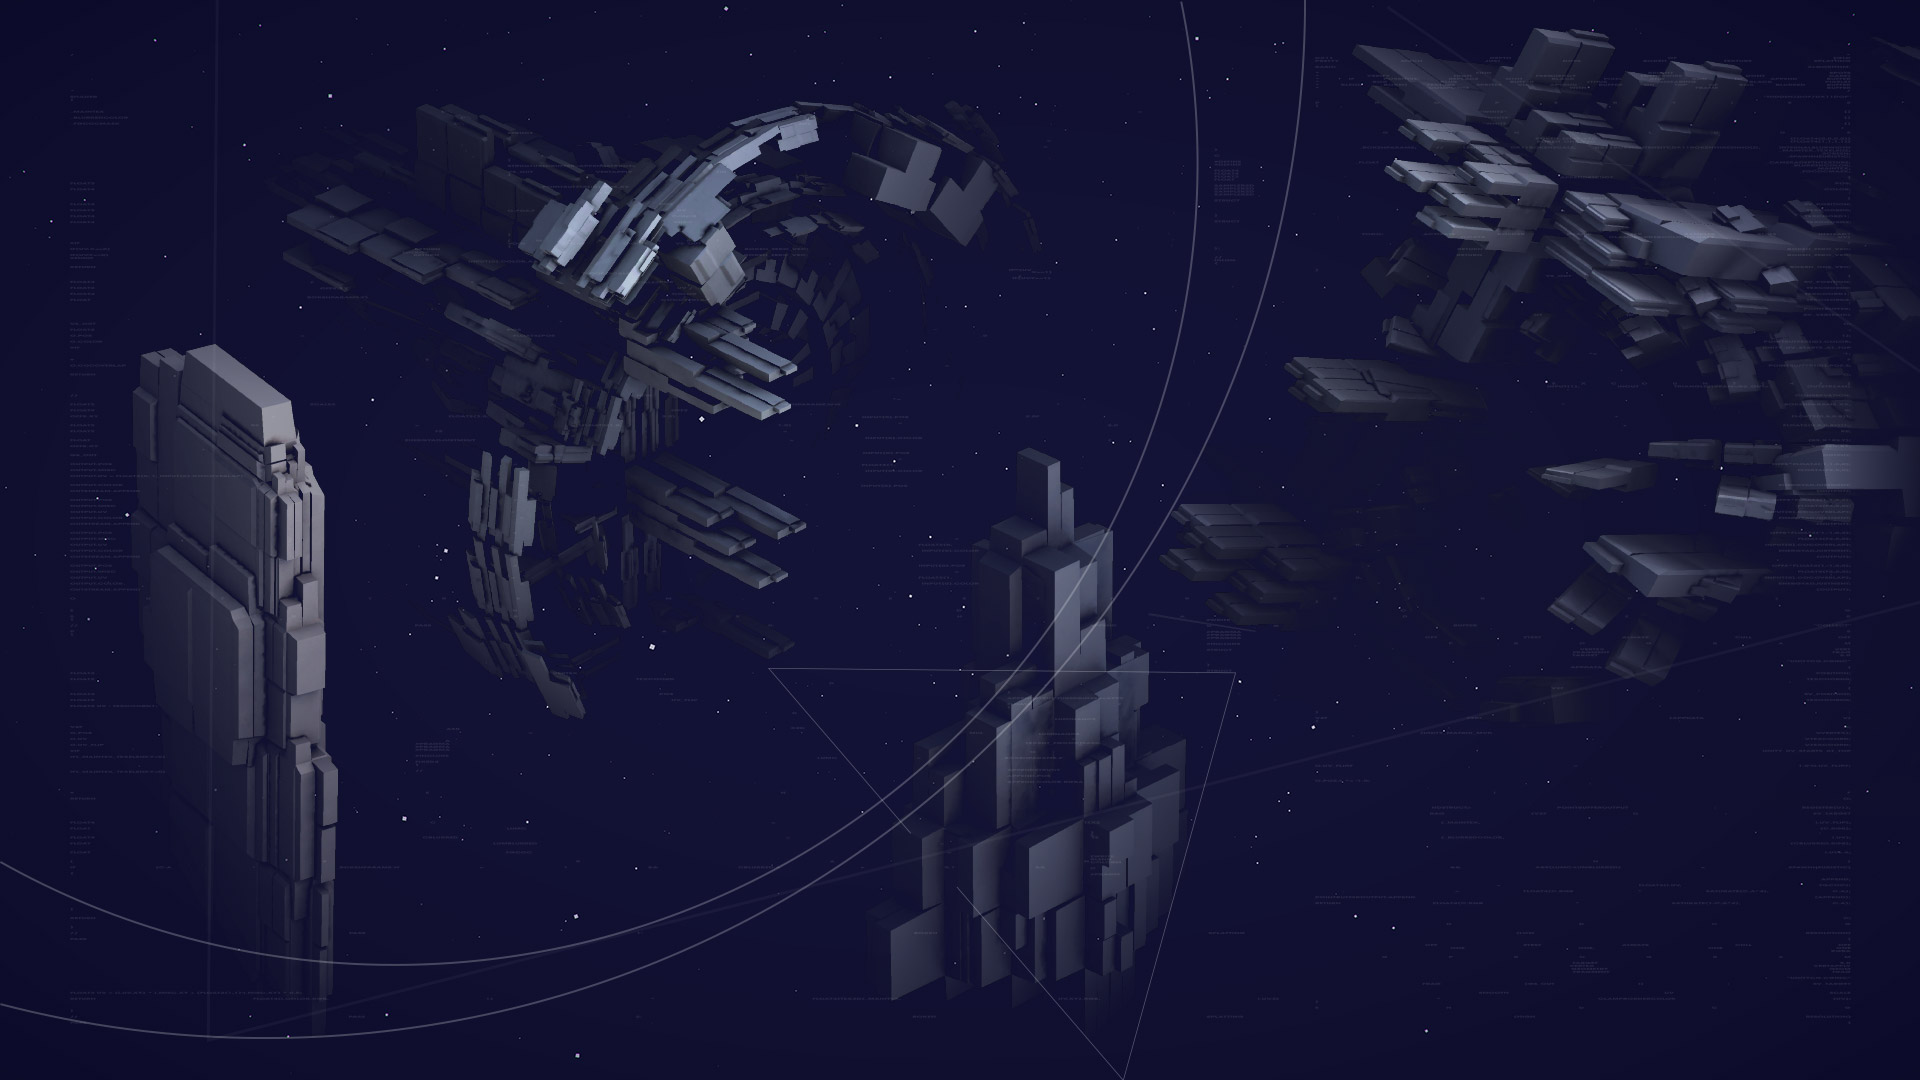 Space_Journey_Unity3D_AssetStore_SpaceGame.jpg